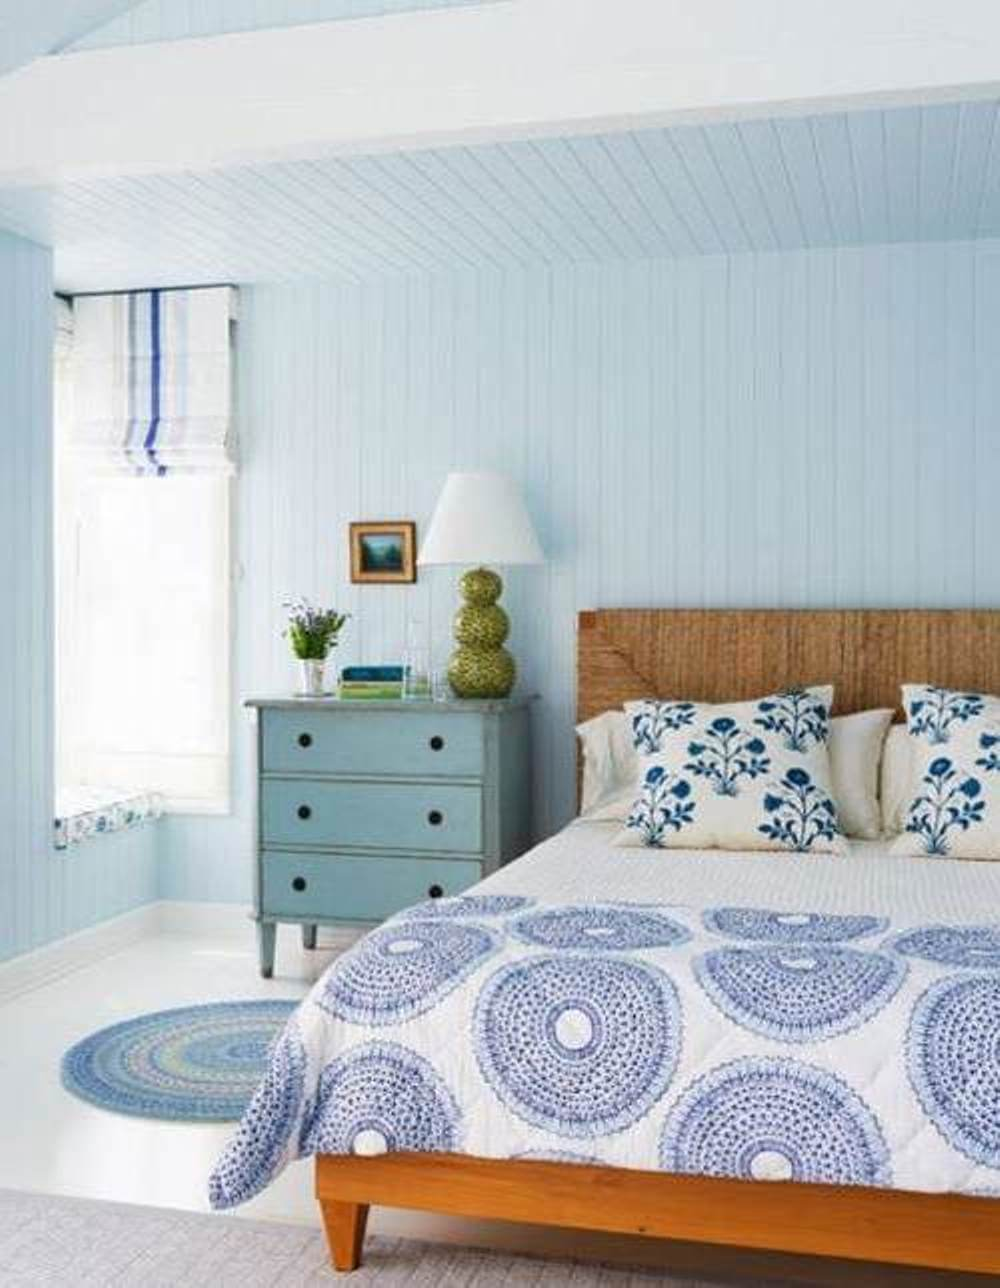 10 cool beach inspired bedroom interior design ideas for Beach design rooms